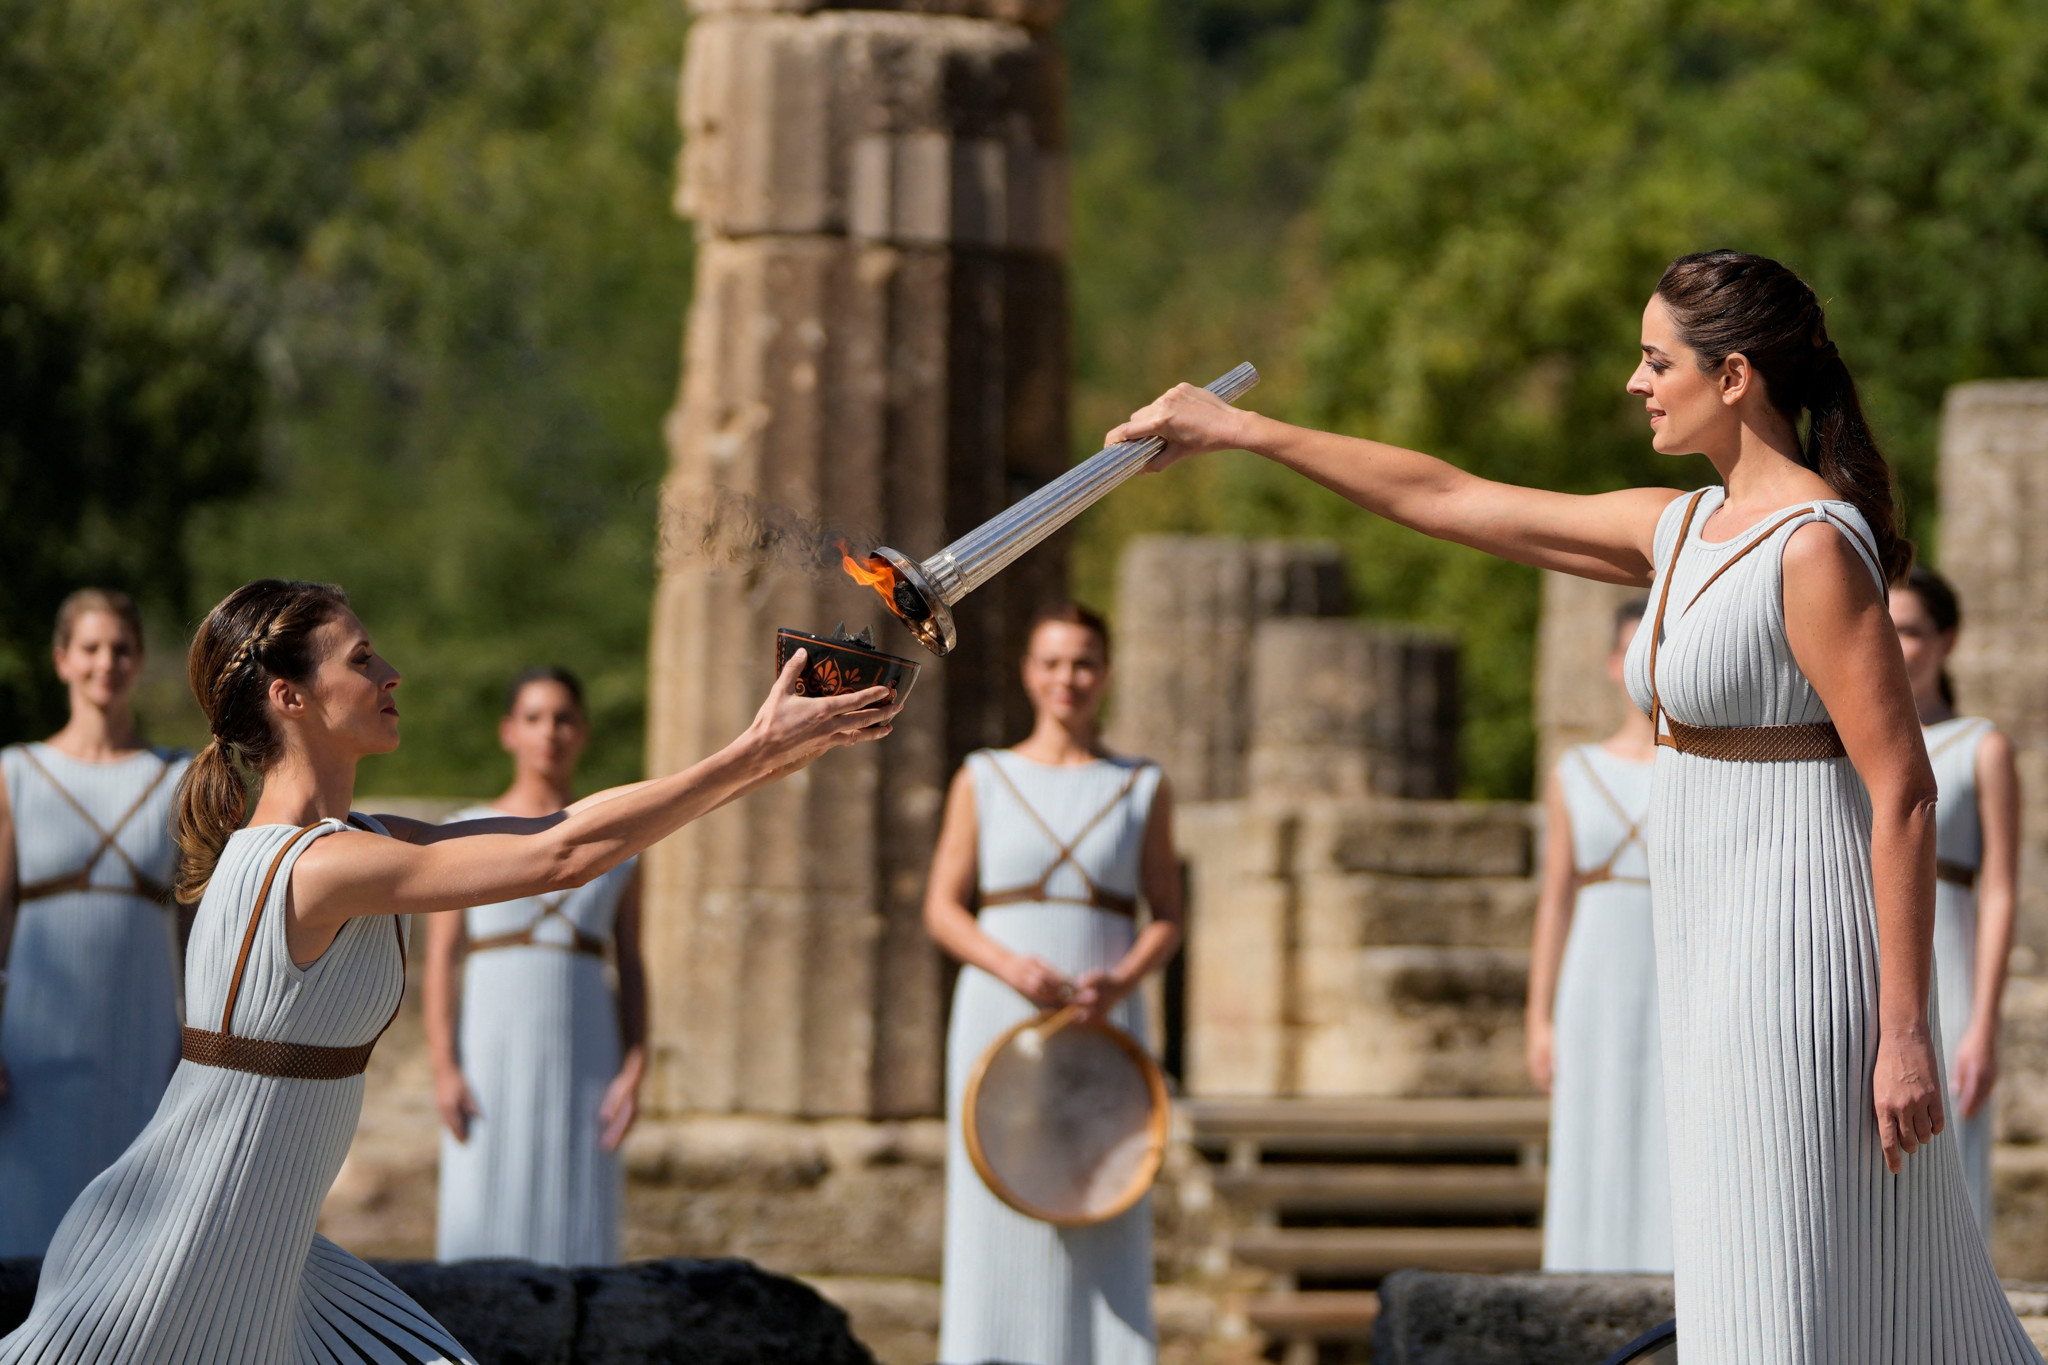 High Priestess Xanthi Georgiou lights the Cauldron, which features the Flame used during the Beijing 2022 Torch Relay ©Getty Images